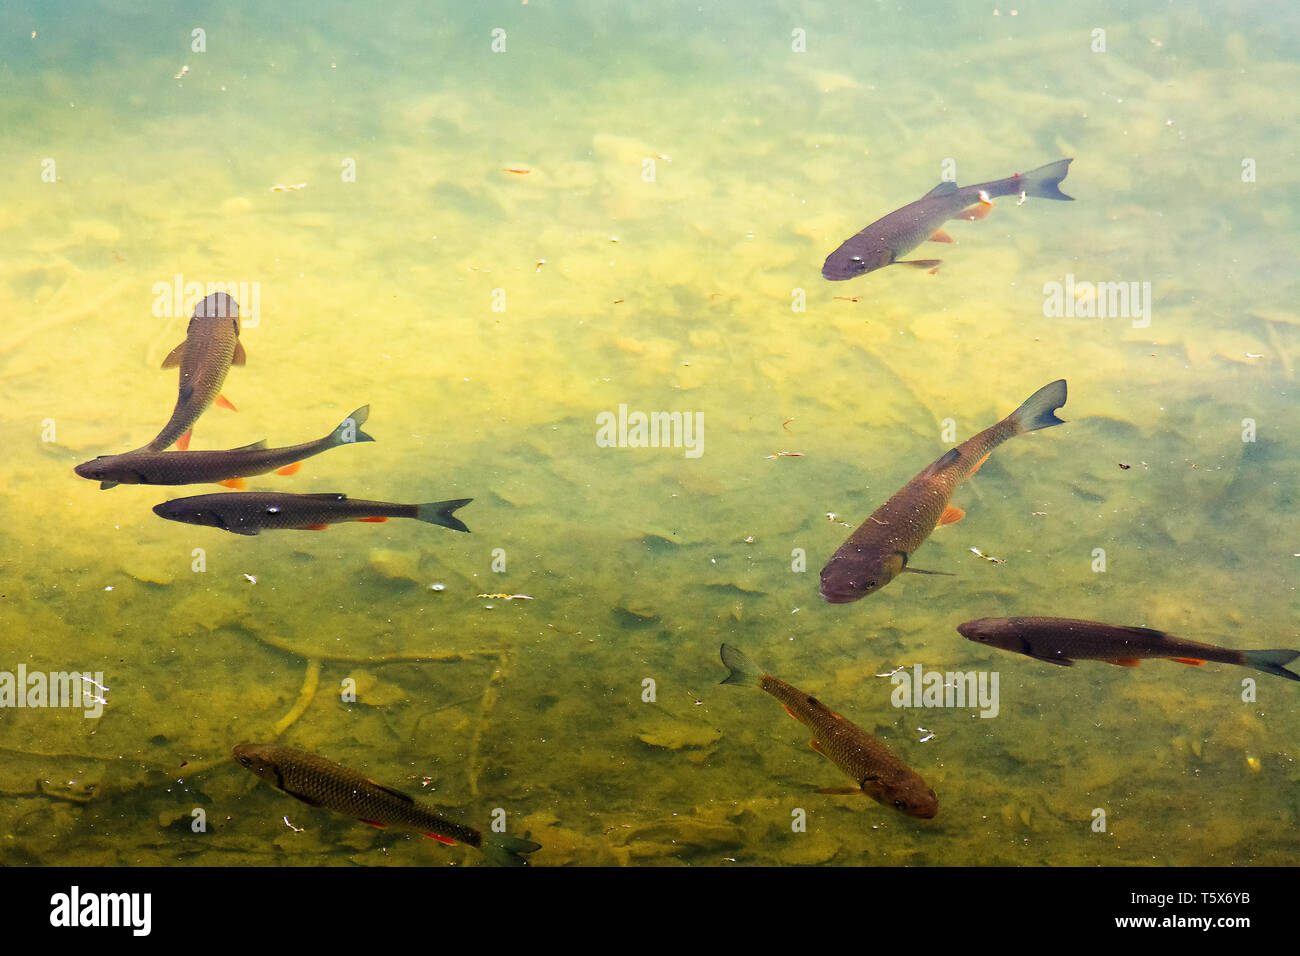 trout fish in the lake. wonderful lighting on the water. beautiful nature background. - Stock Image